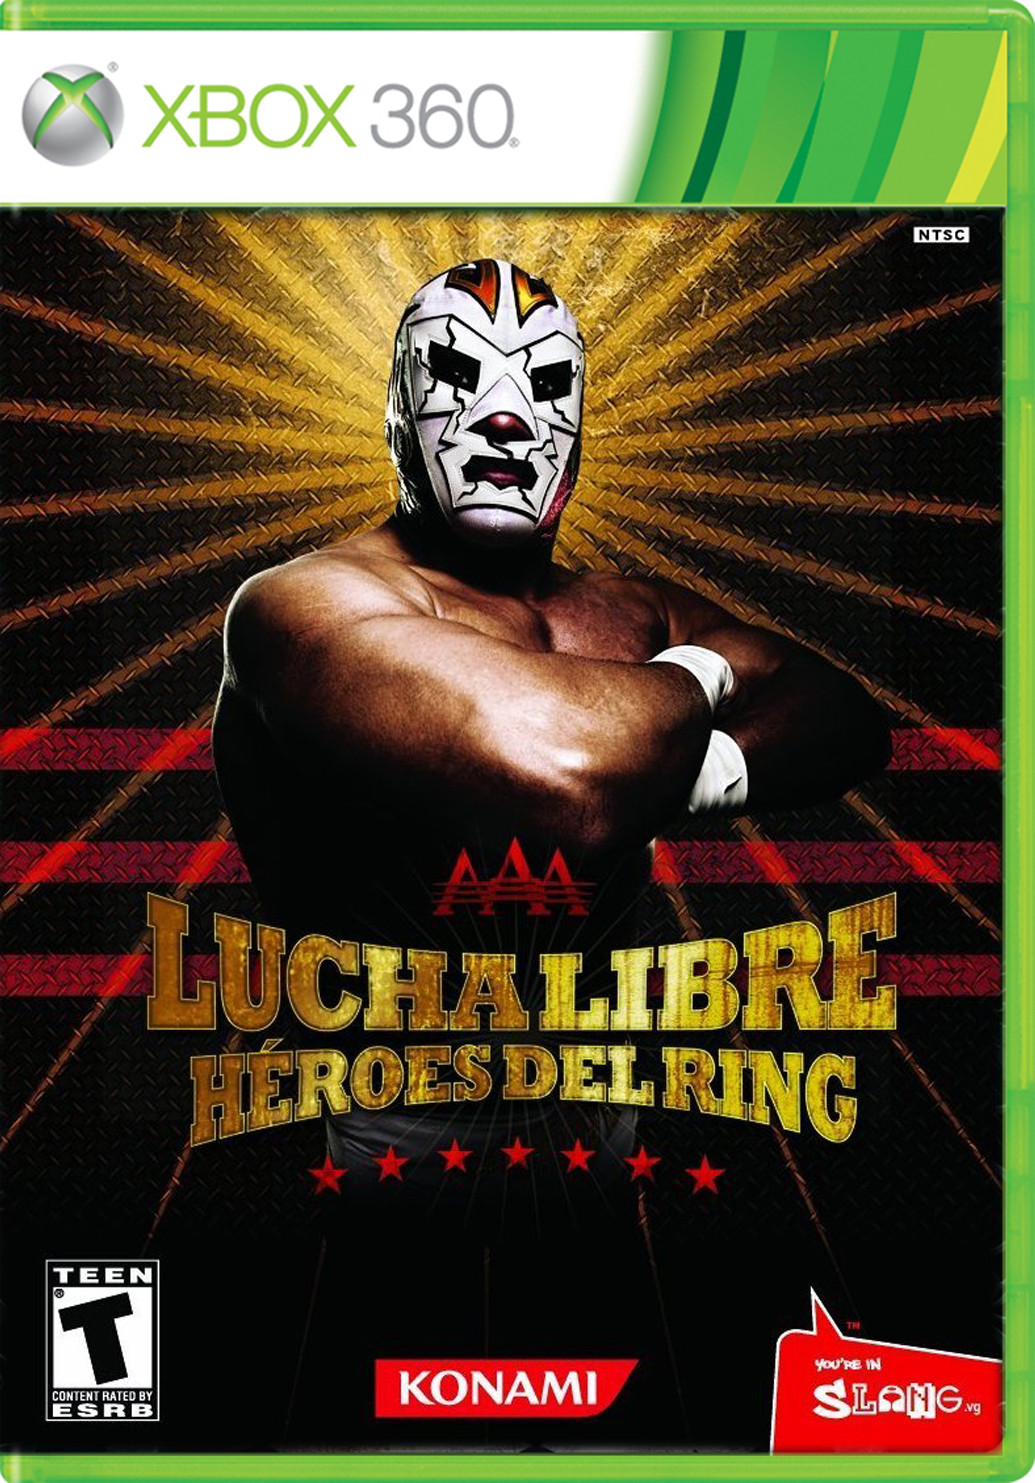 Lucha Libre Juego Online Aaa Lucha Libre Heroes Del Ring Para 360 Gameplanet